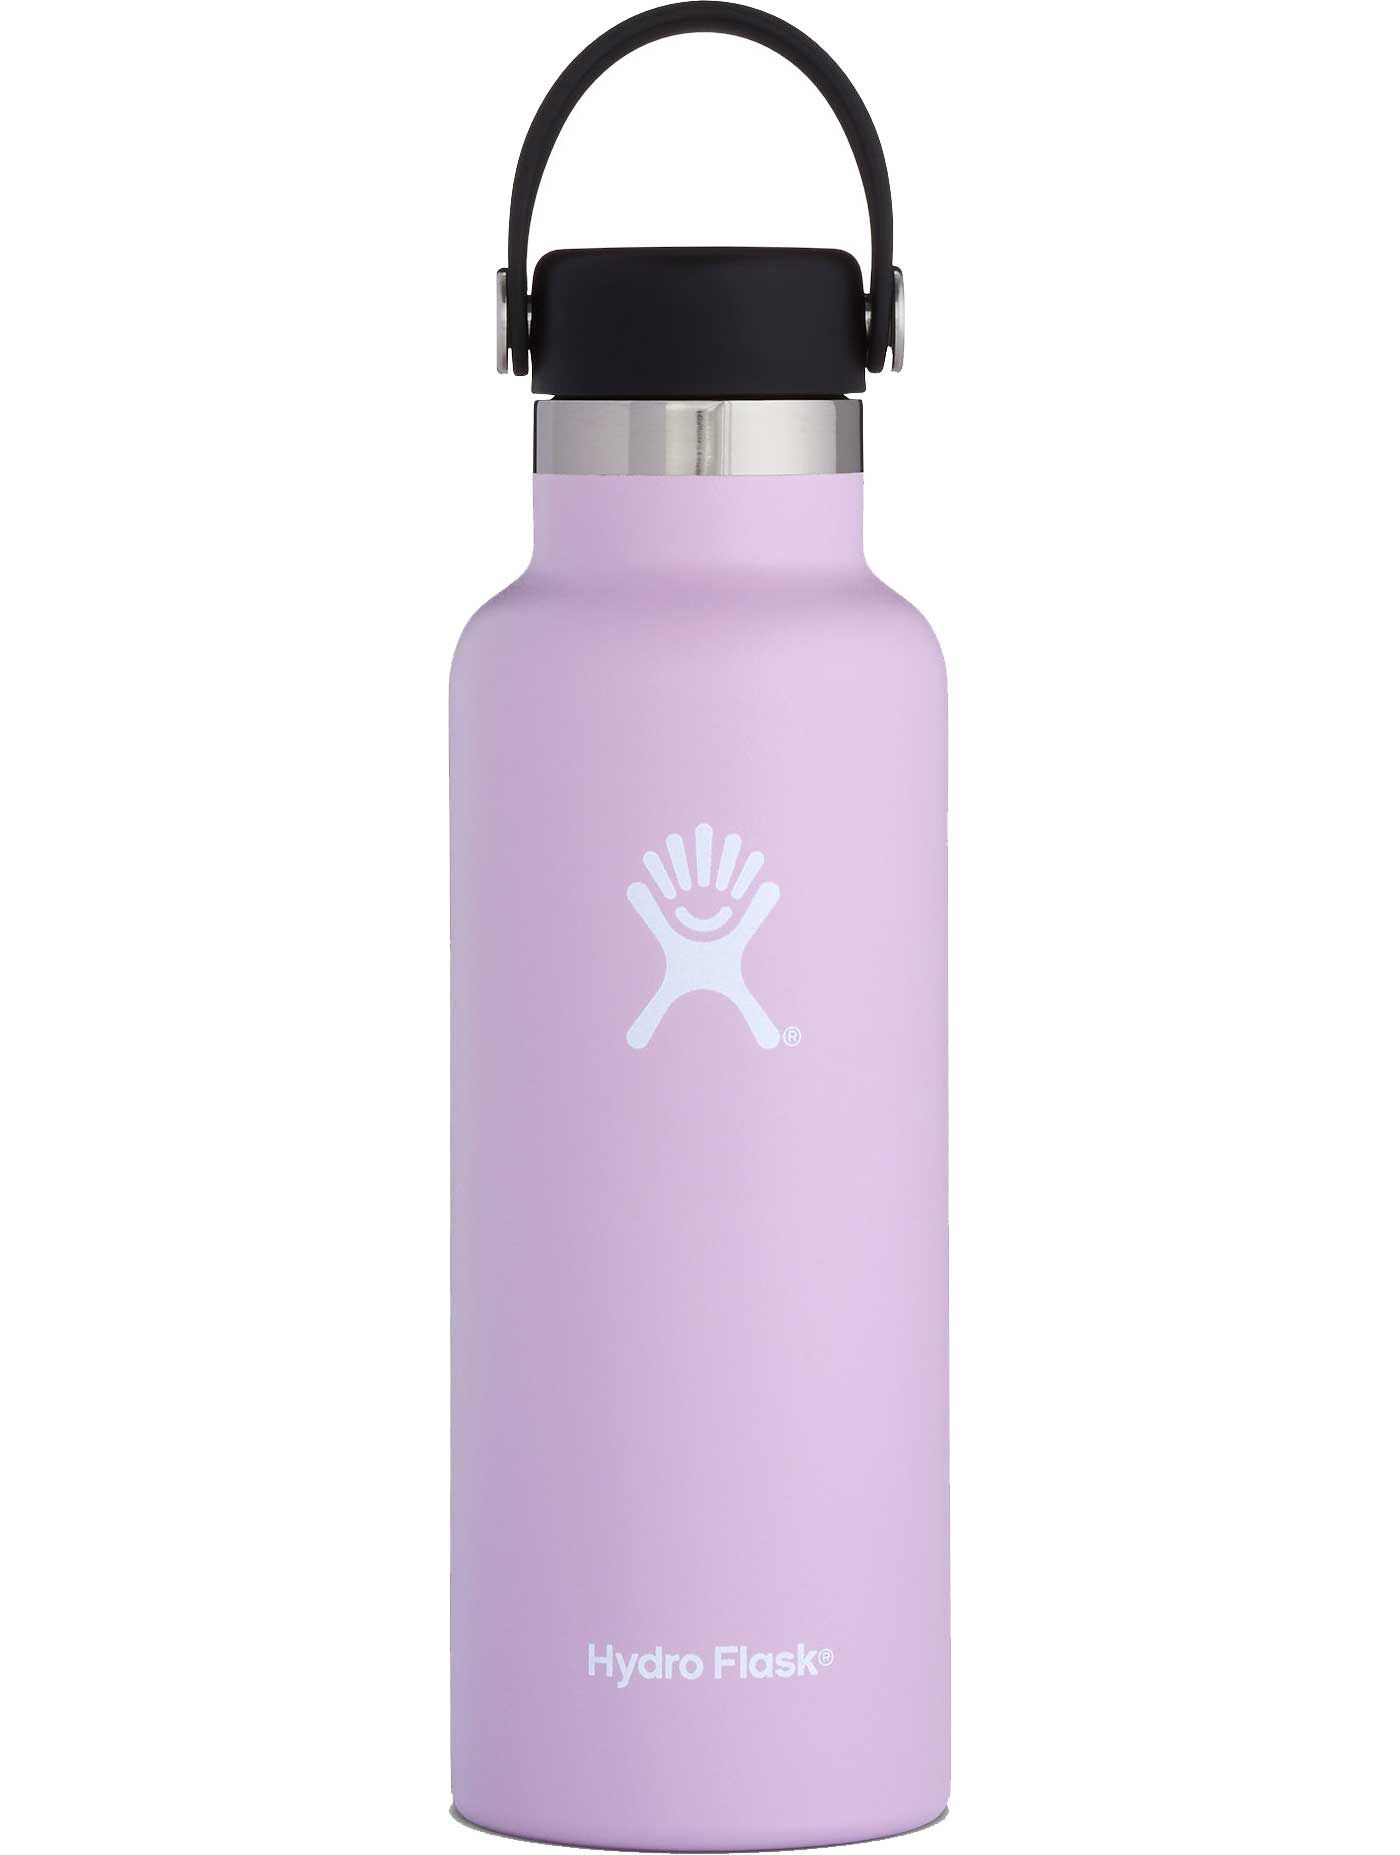 Hydro Flask Standard Mouth 18 oz. Bottle